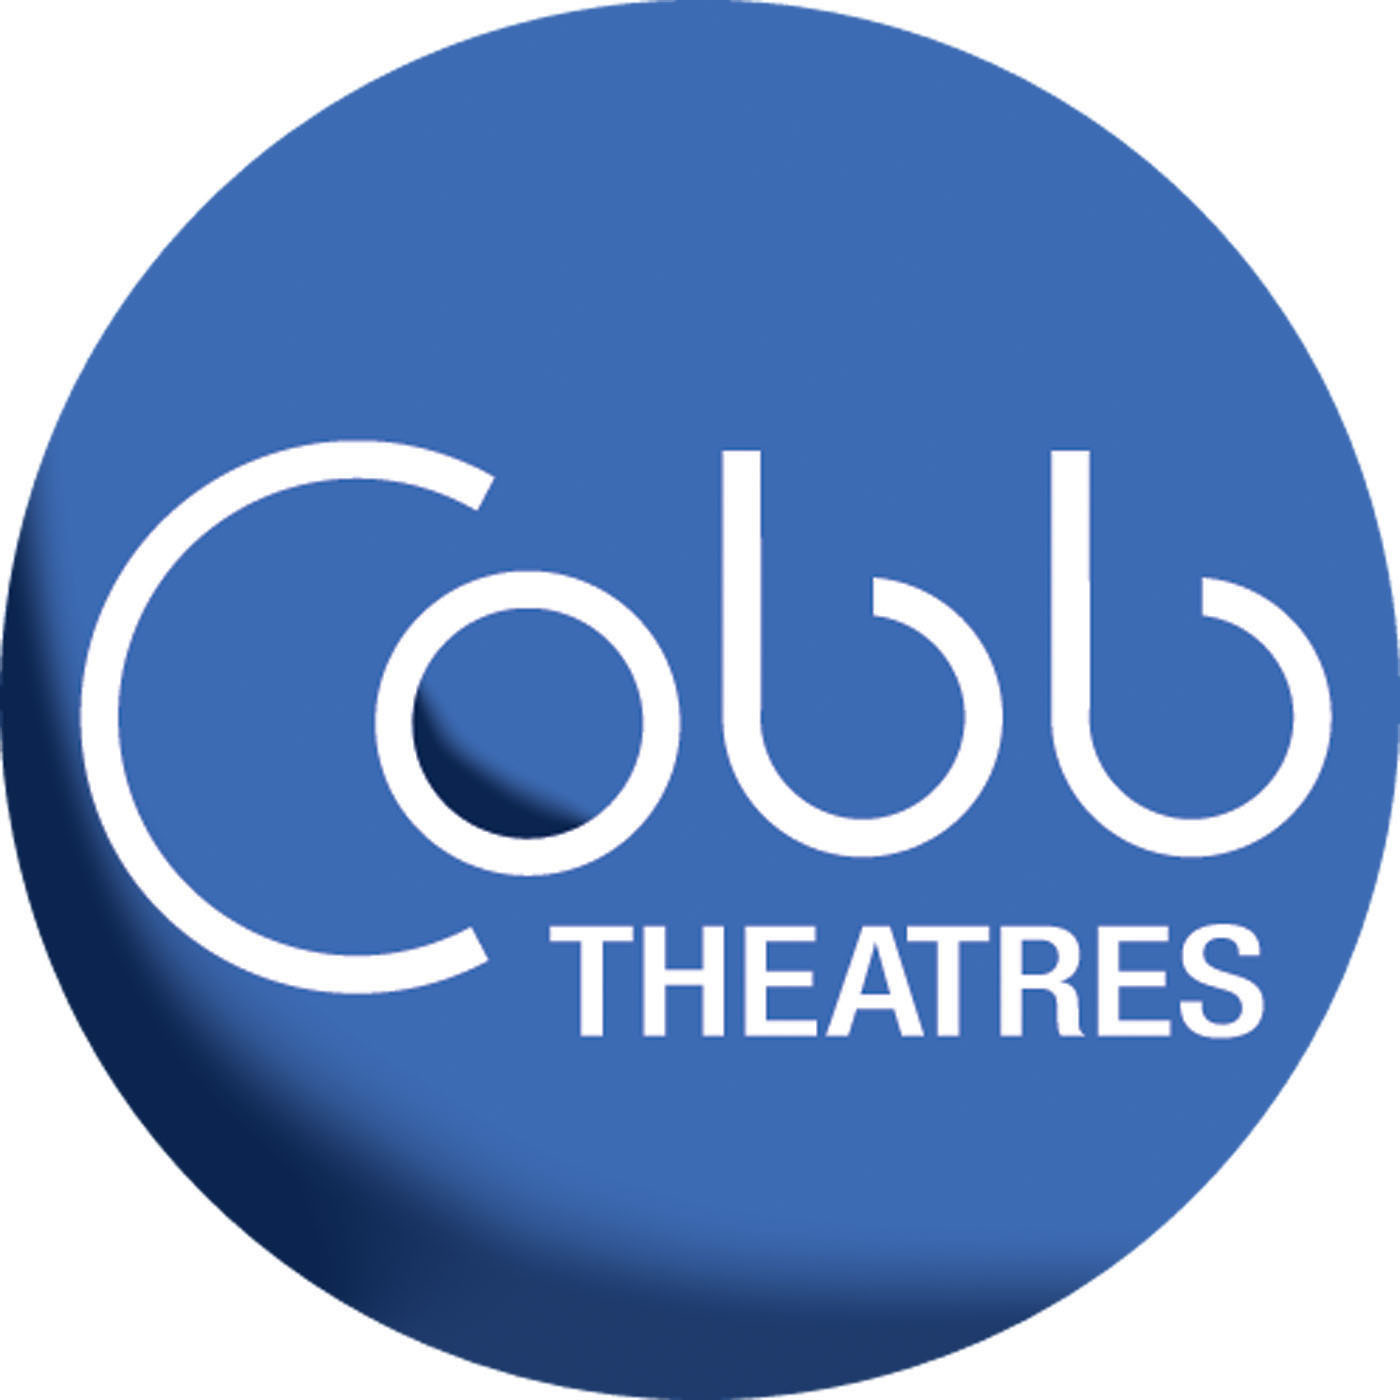 cobb theatres logo � the hotspotorlando